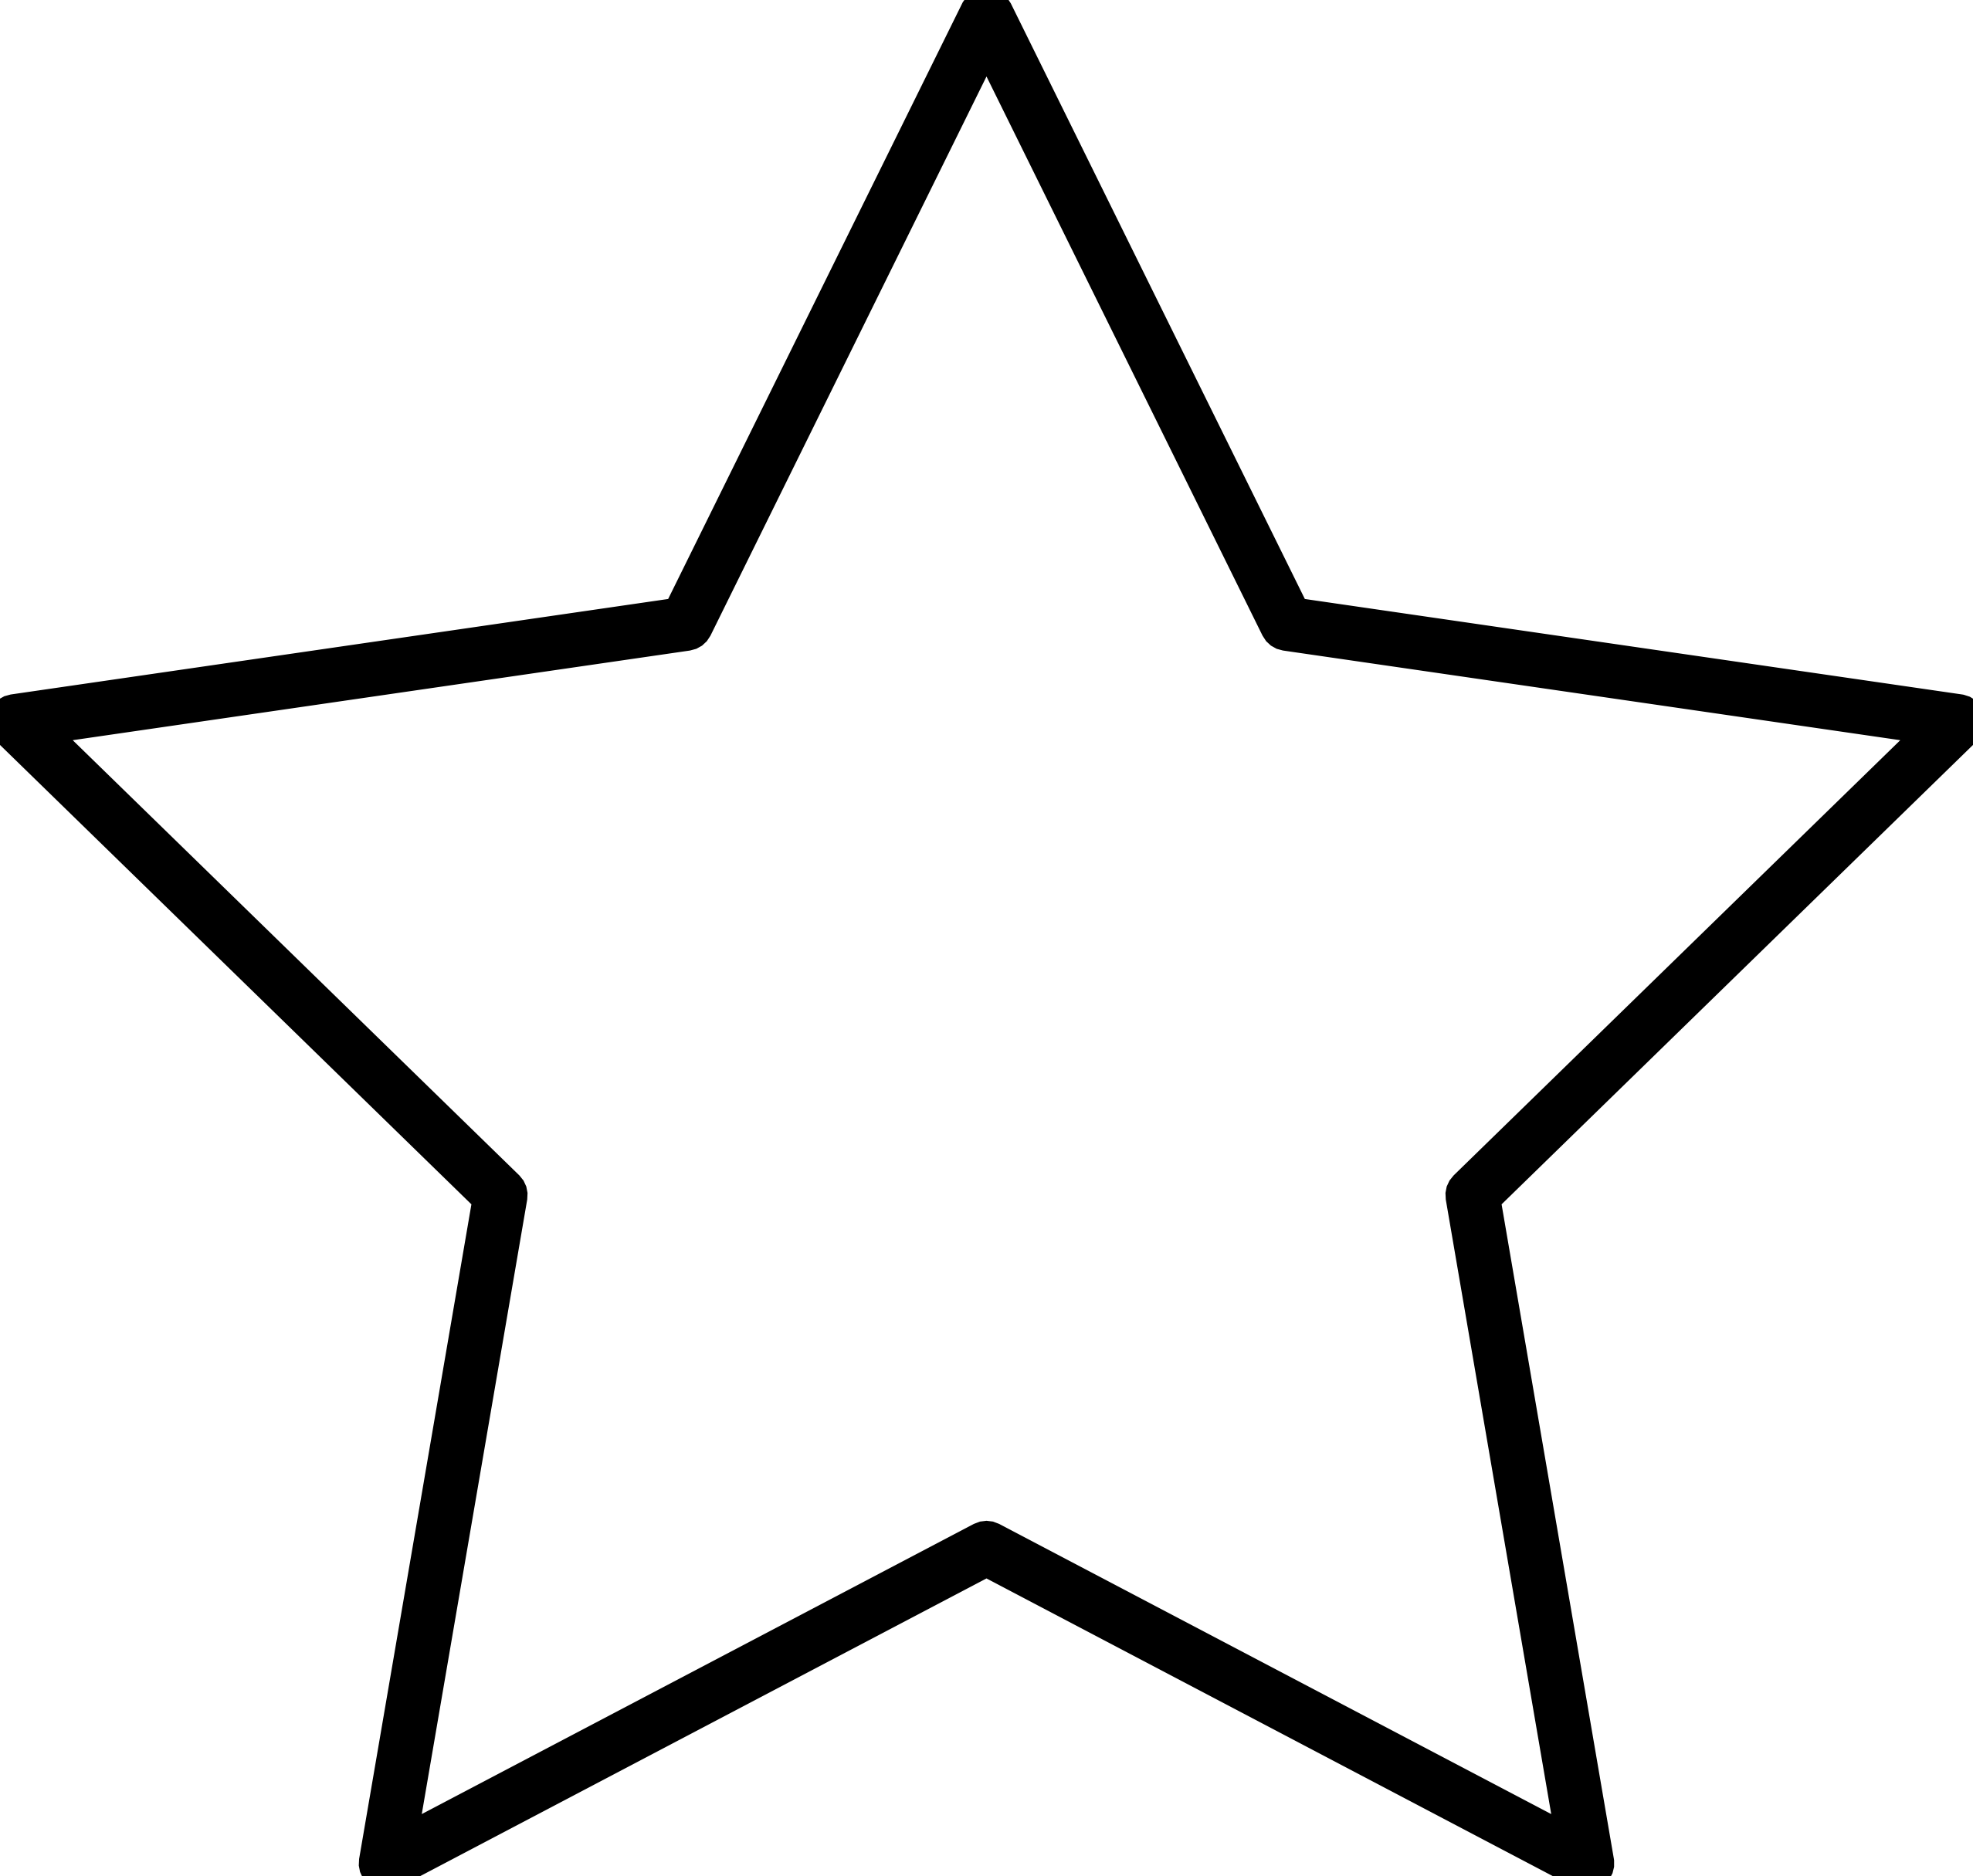 2555x2430 Star Silhouette Outline Clip Art Yellow Star October 2011